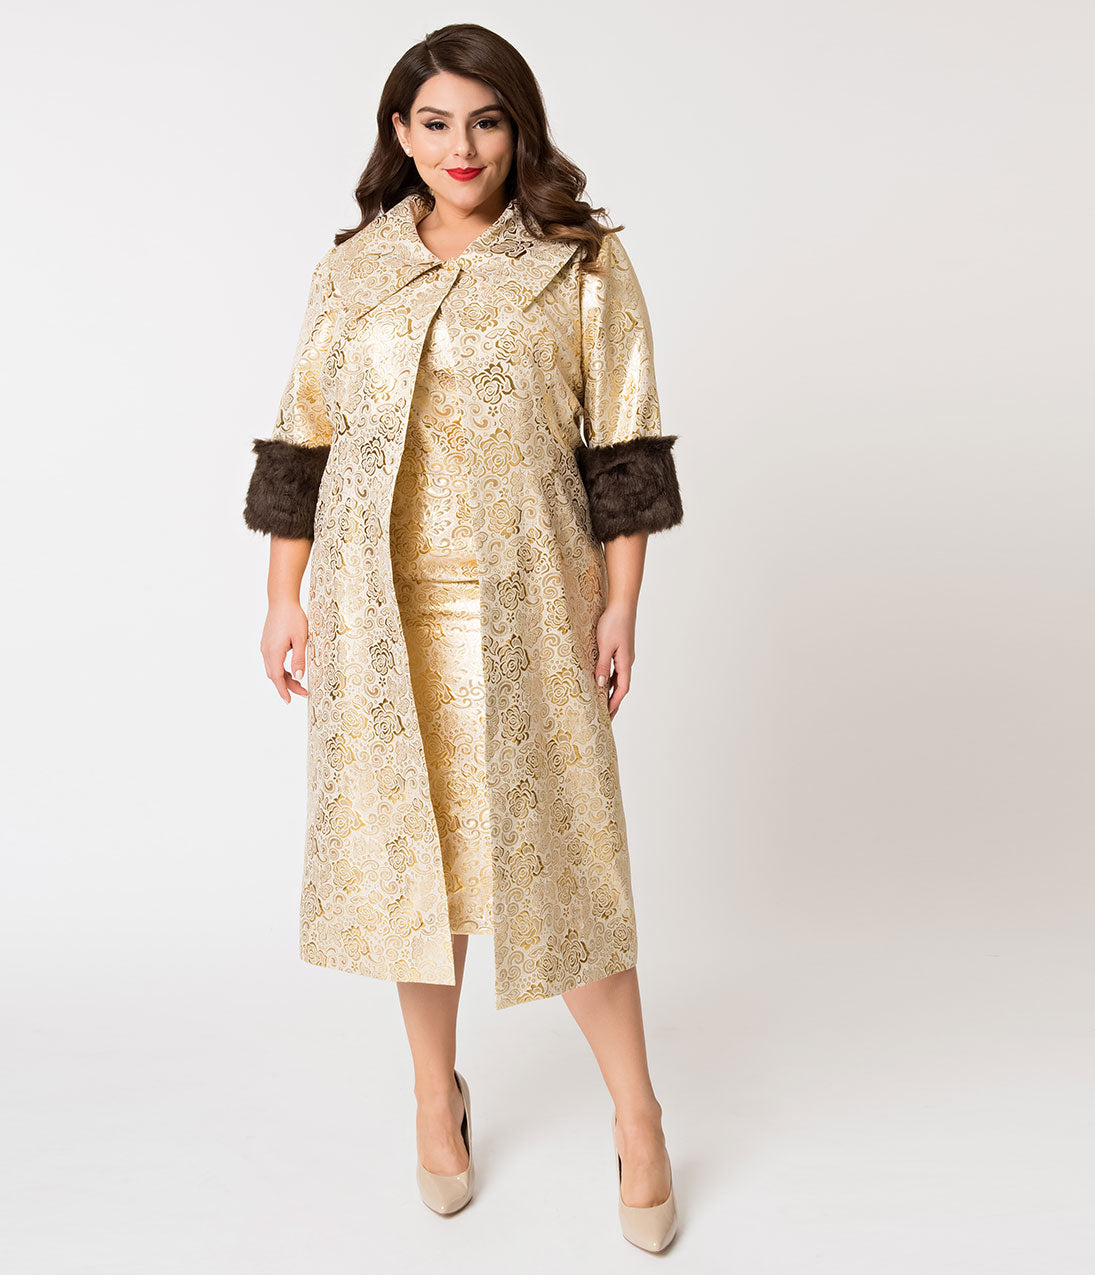 Vintage Coats & Jackets | Retro Coats and Jackets Barbie X Unique Vintage Plus Size Evening Splendour Brocade Coat $148.00 AT vintagedancer.com